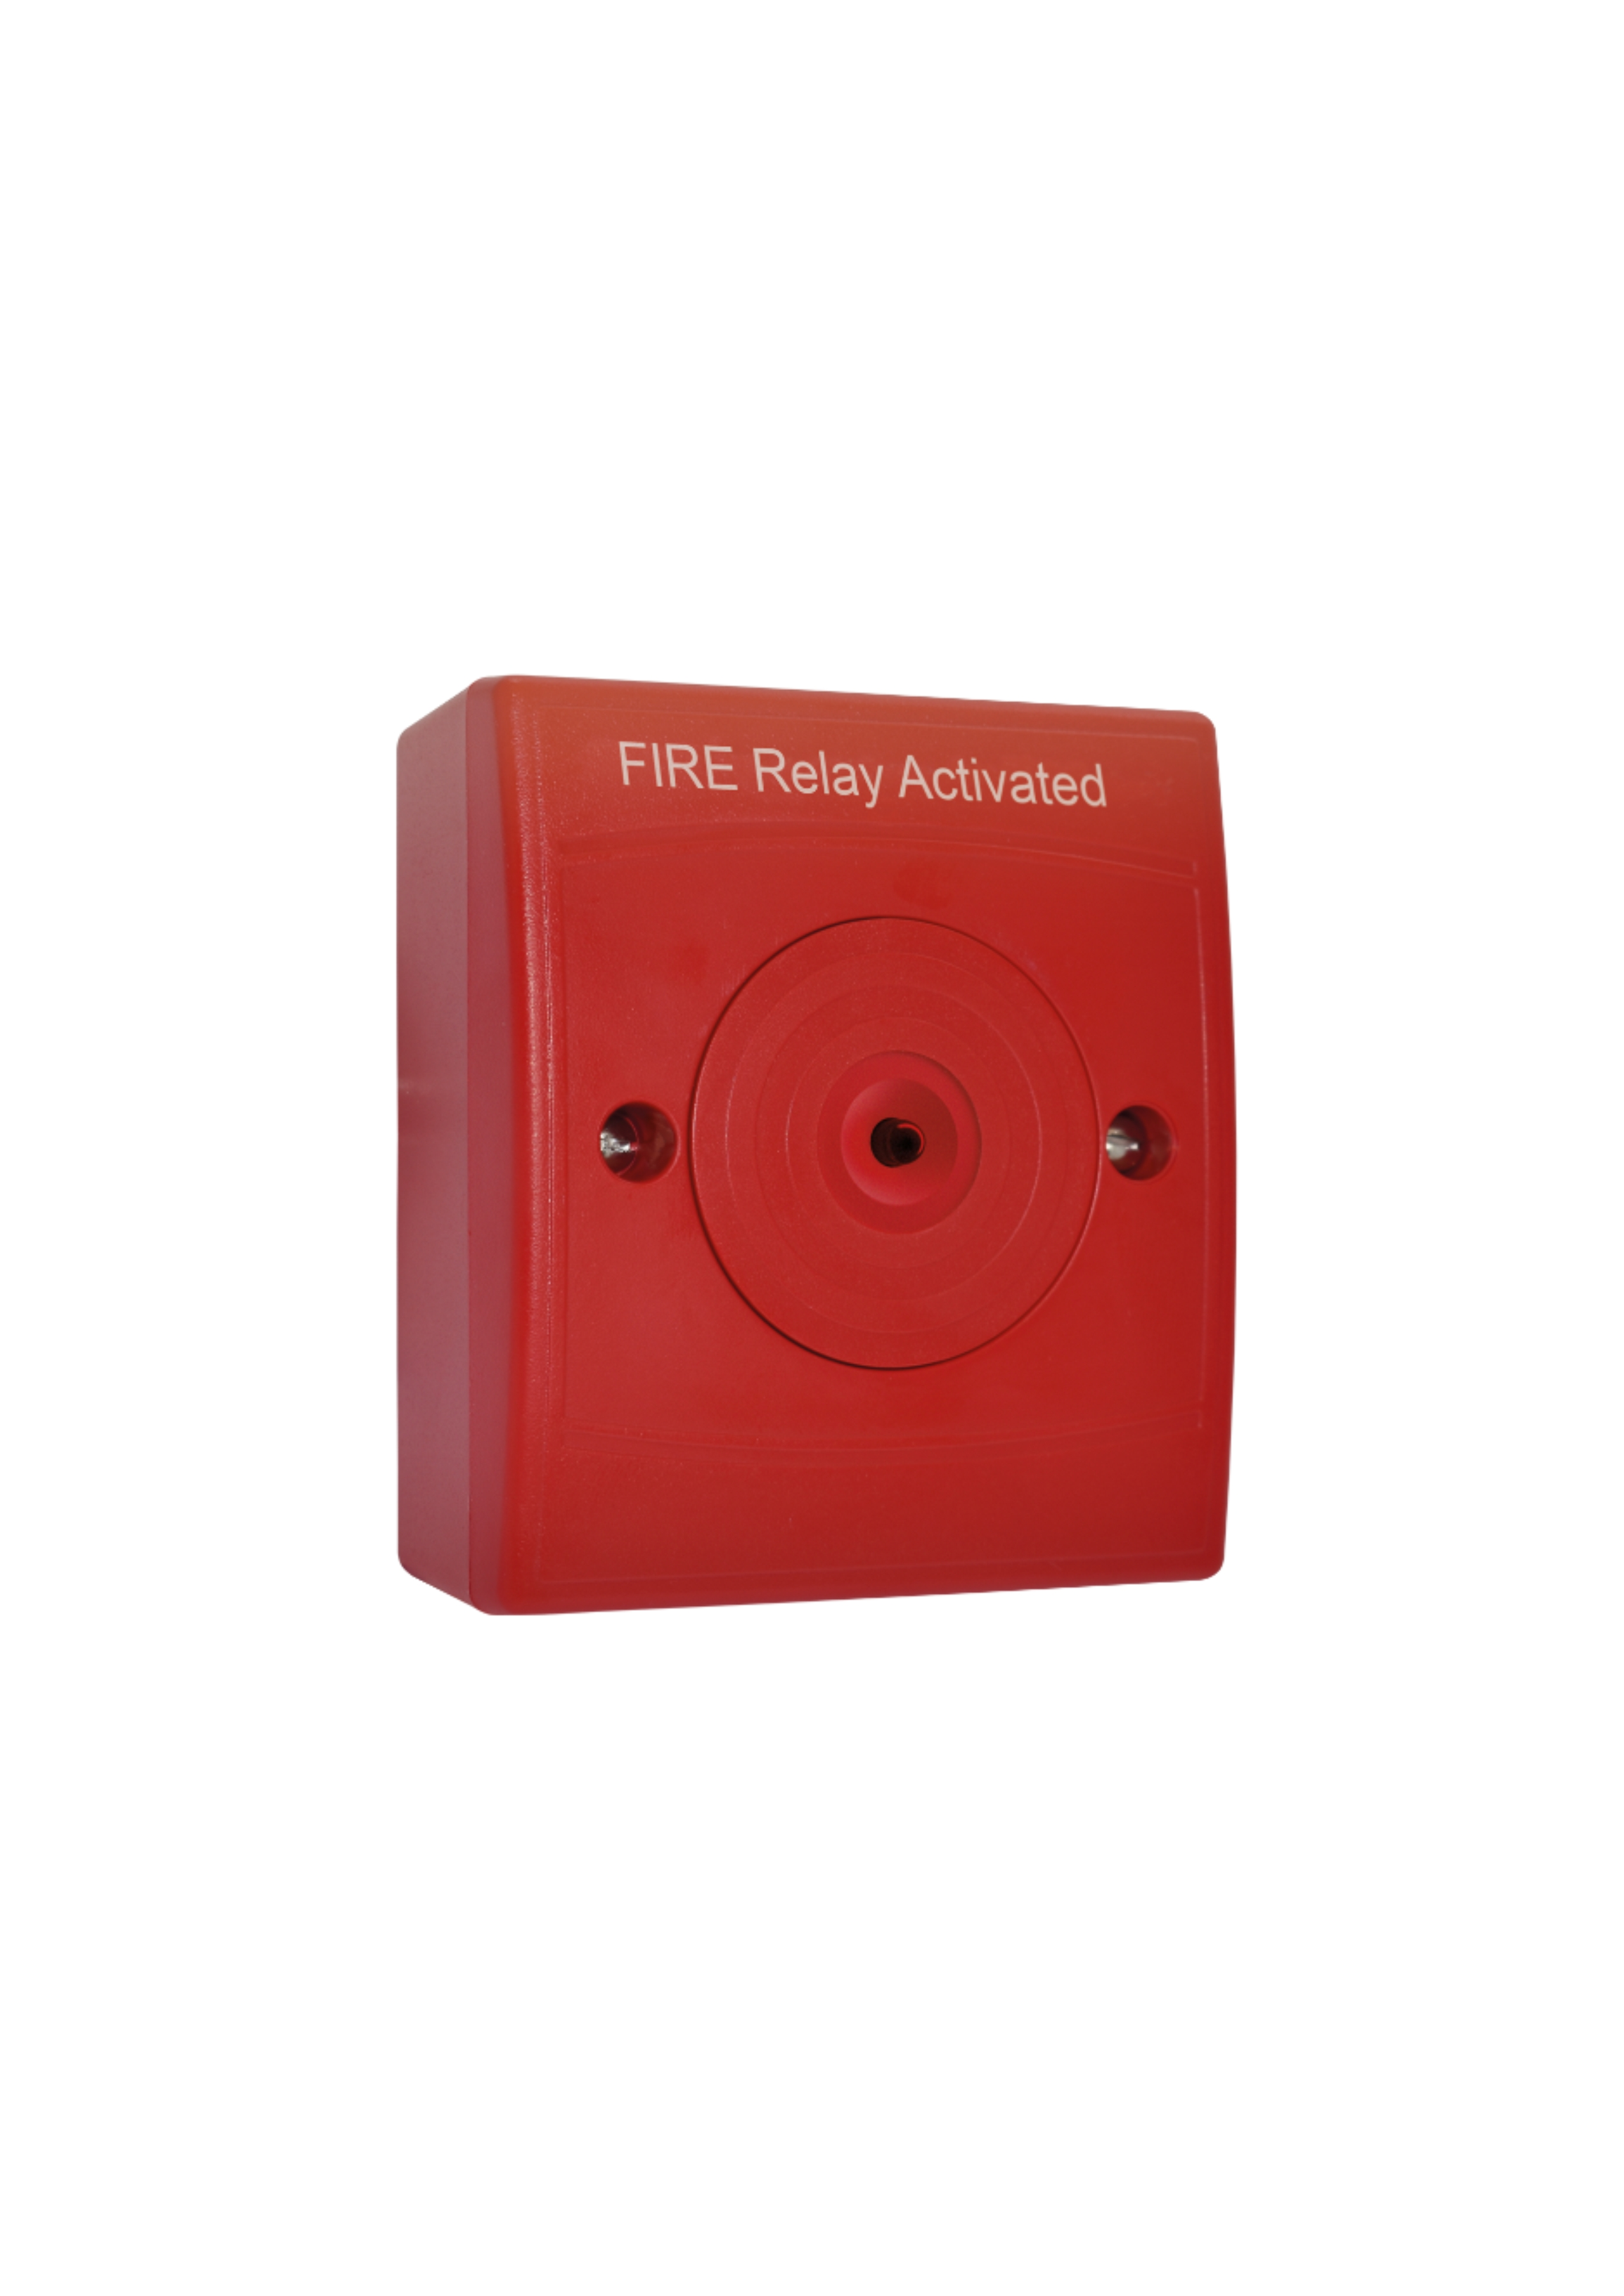 Identifire Auxiliary Relay Surface Mount, Red Case...